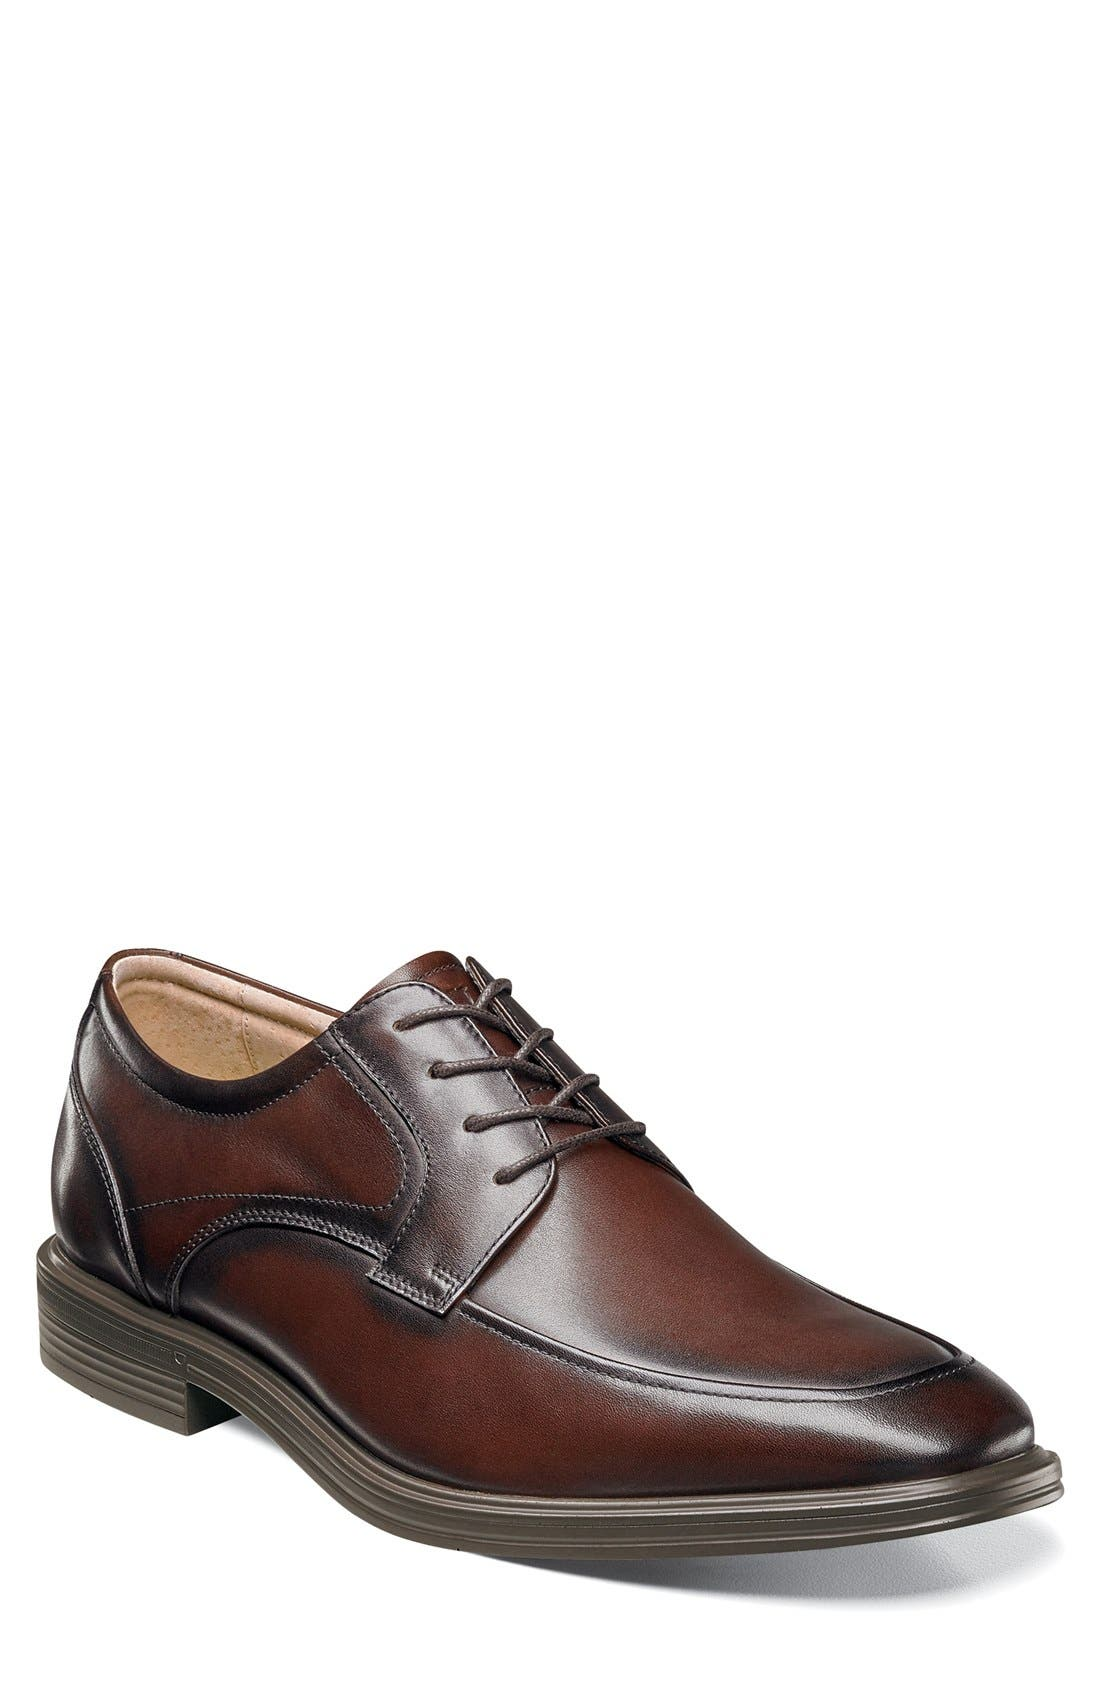 'Heights' Apron Toe Derby,                             Main thumbnail 1, color,                             Brown Leather